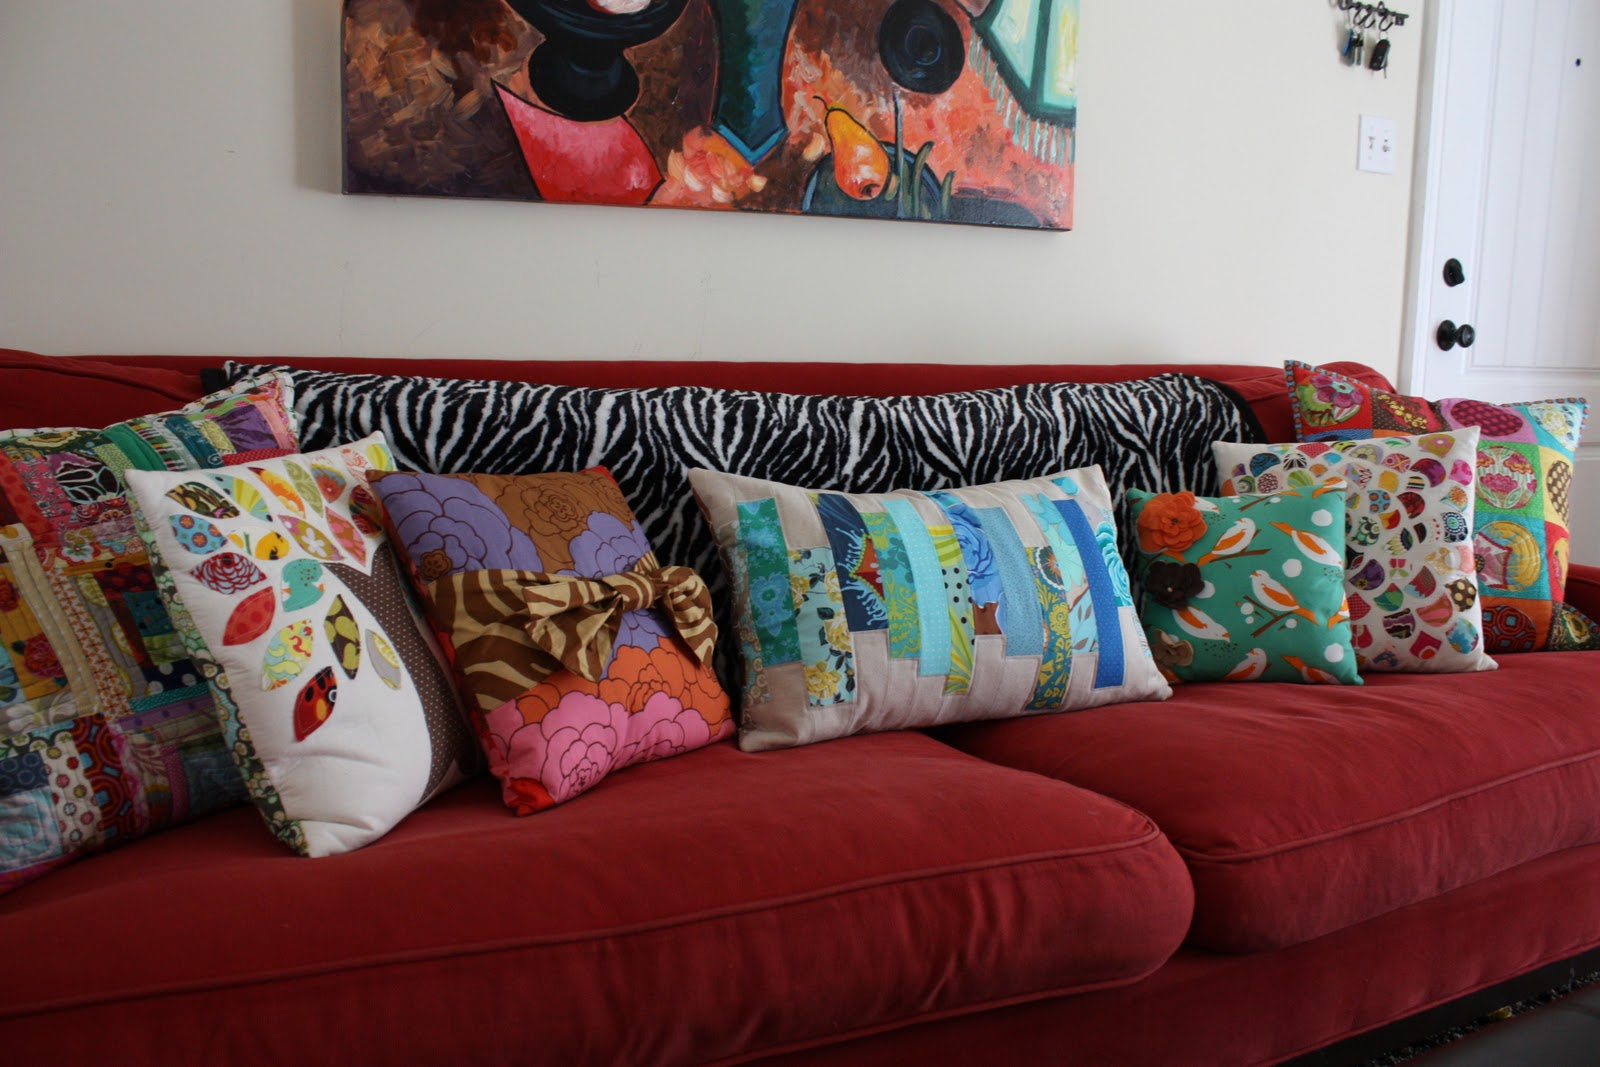 How Many Throw Pillows On A Sectional Couch : MOM: Pillows!!